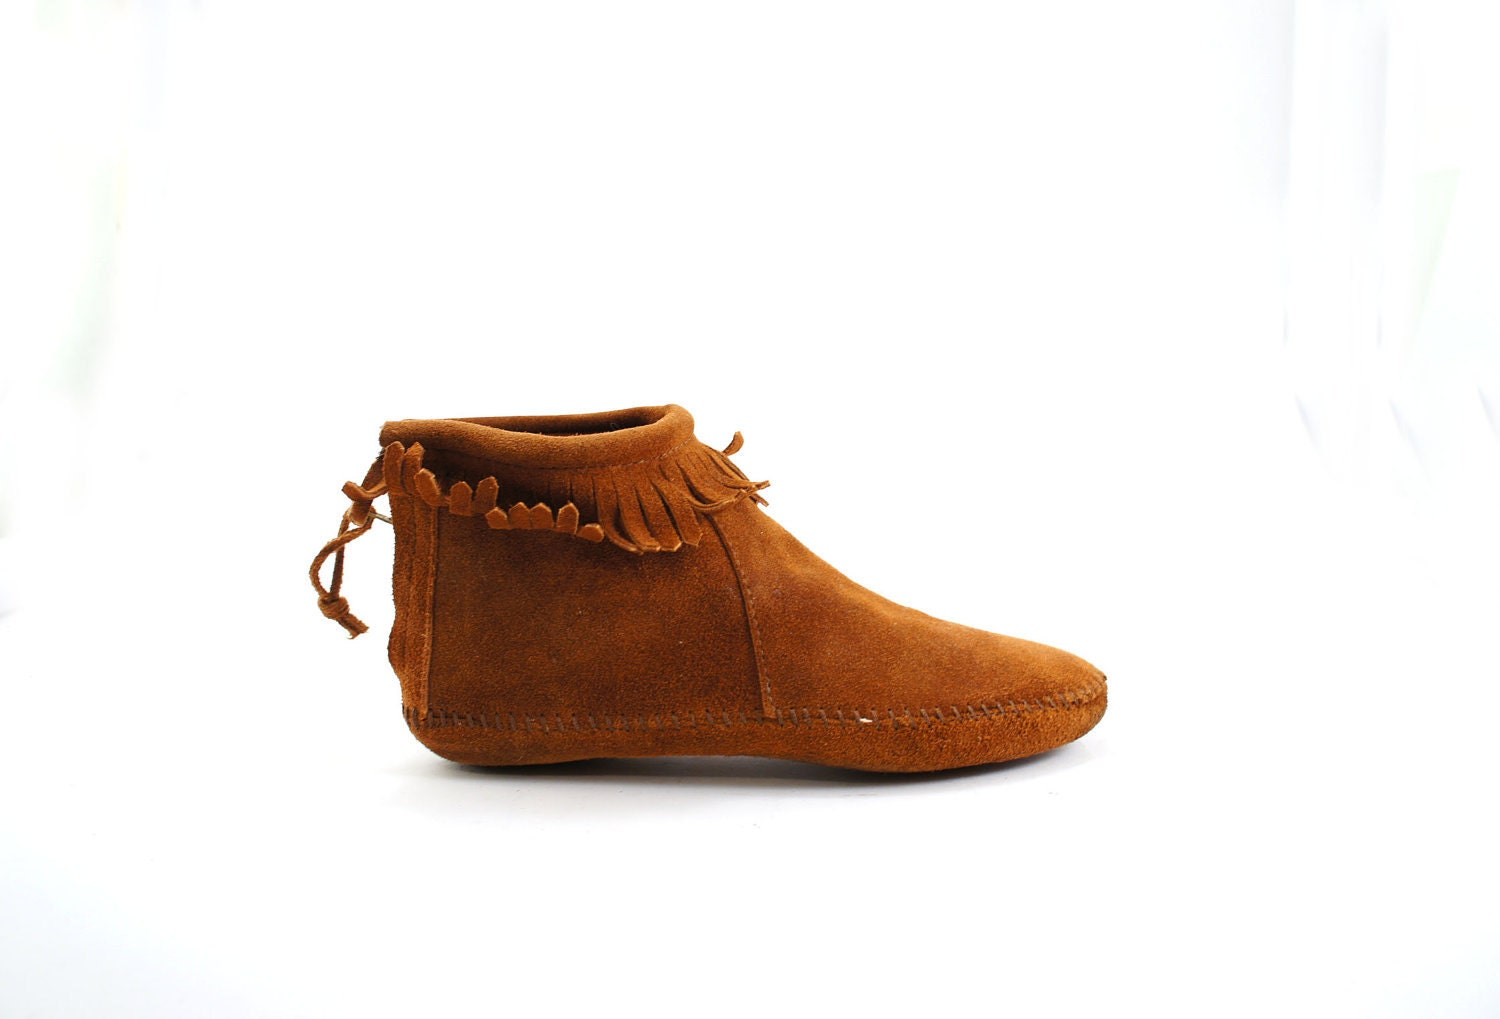 moccasin ankle boots in brown suede leather with fringe cuff